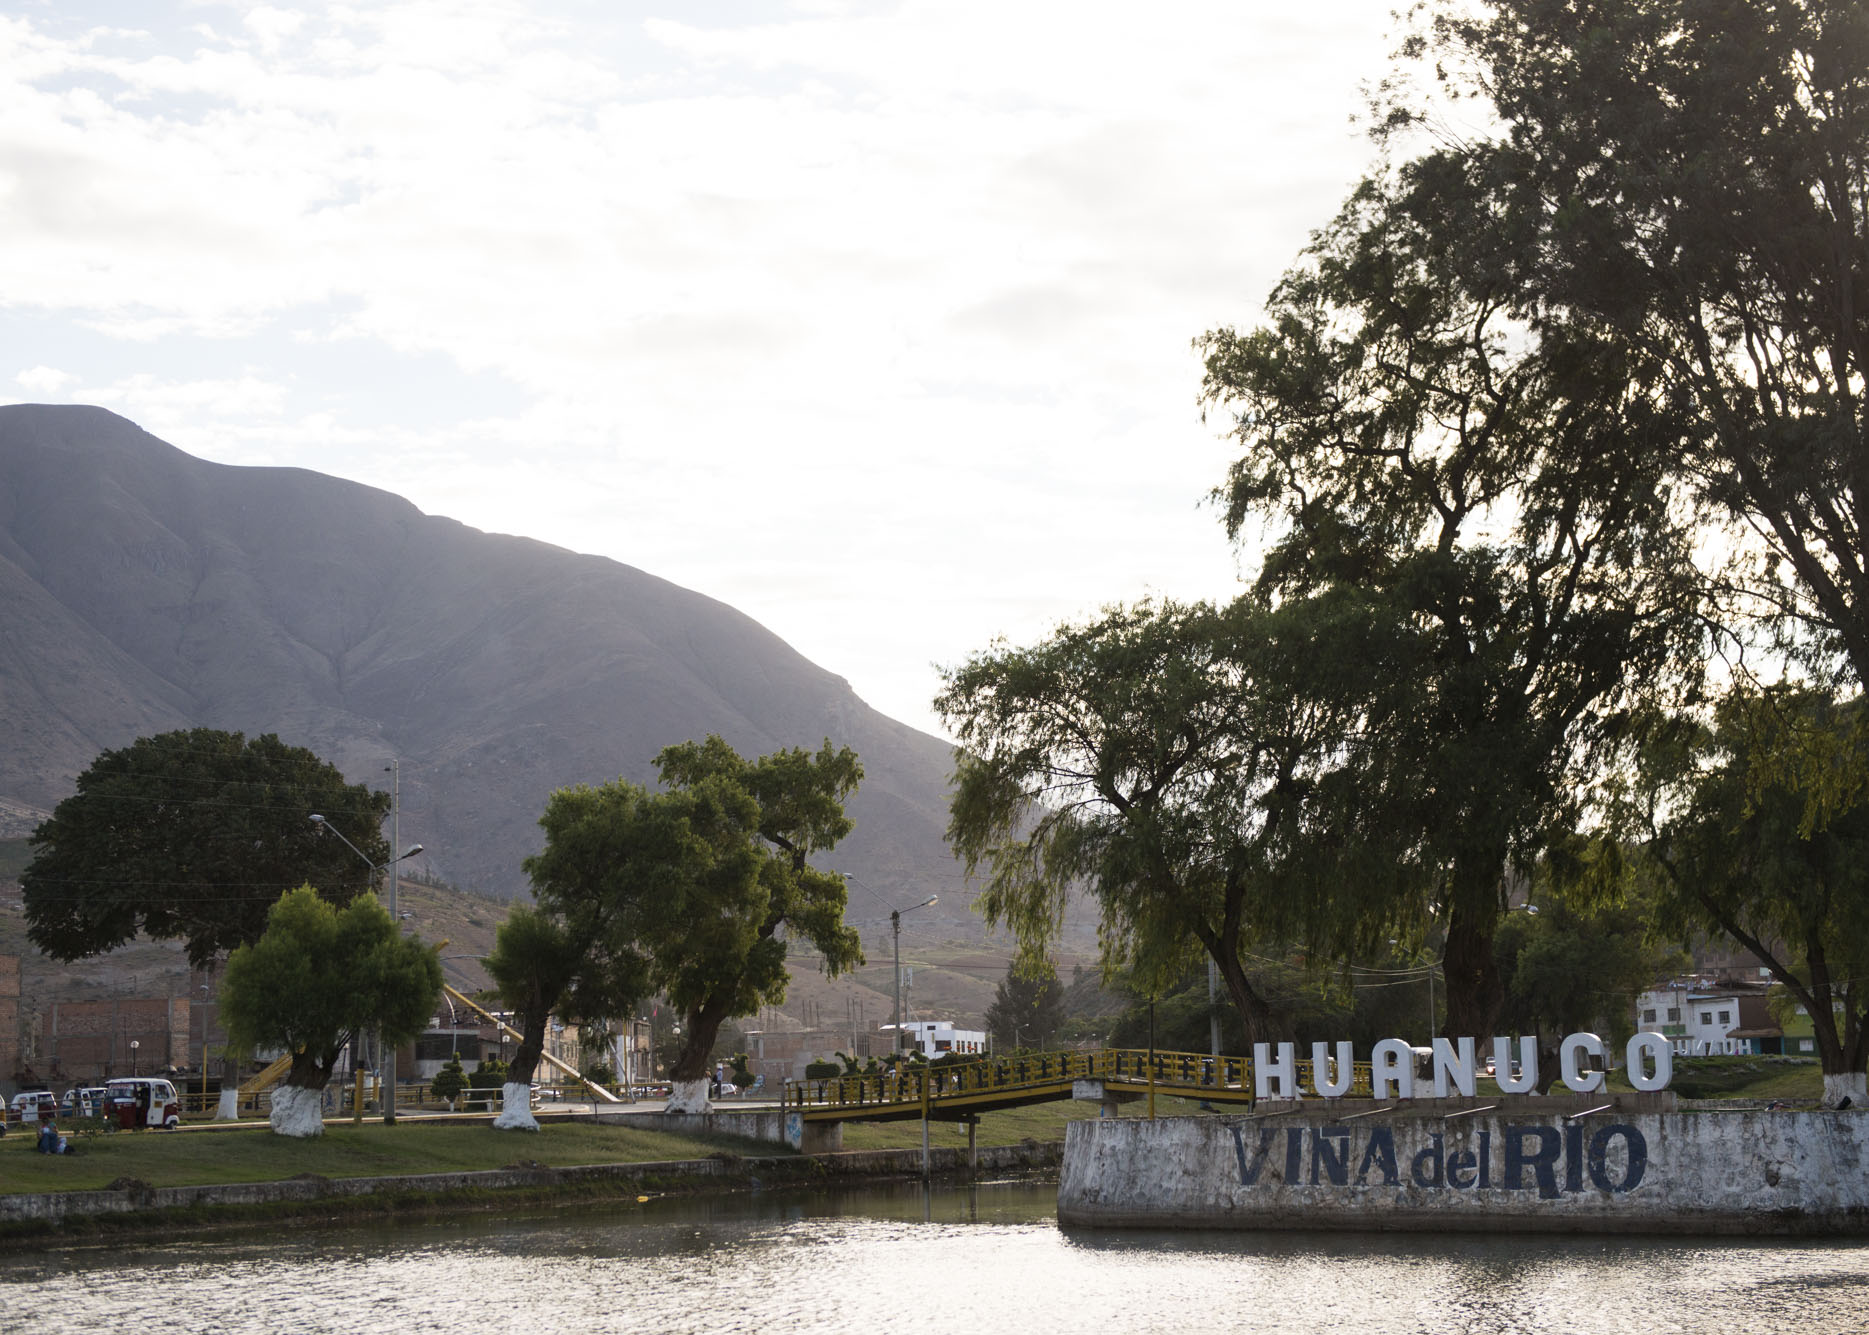 The Huanuco city sign over a river